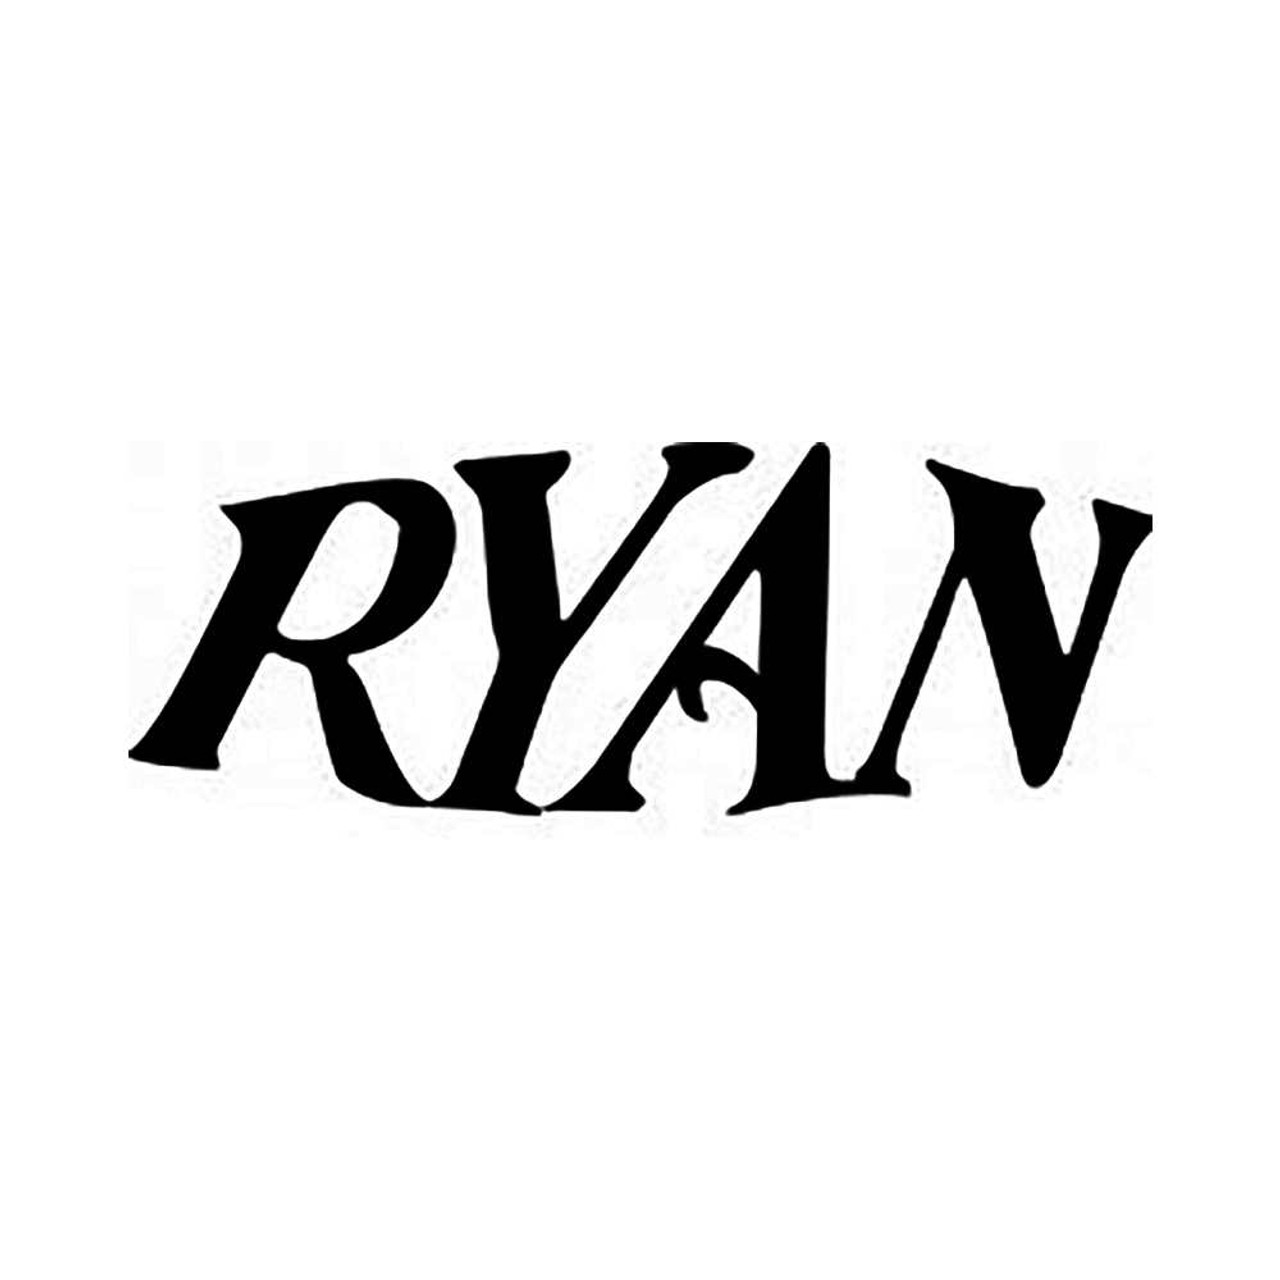 Ryan aircraft logo vinyl graphics decal sticker vinyl decal graphic